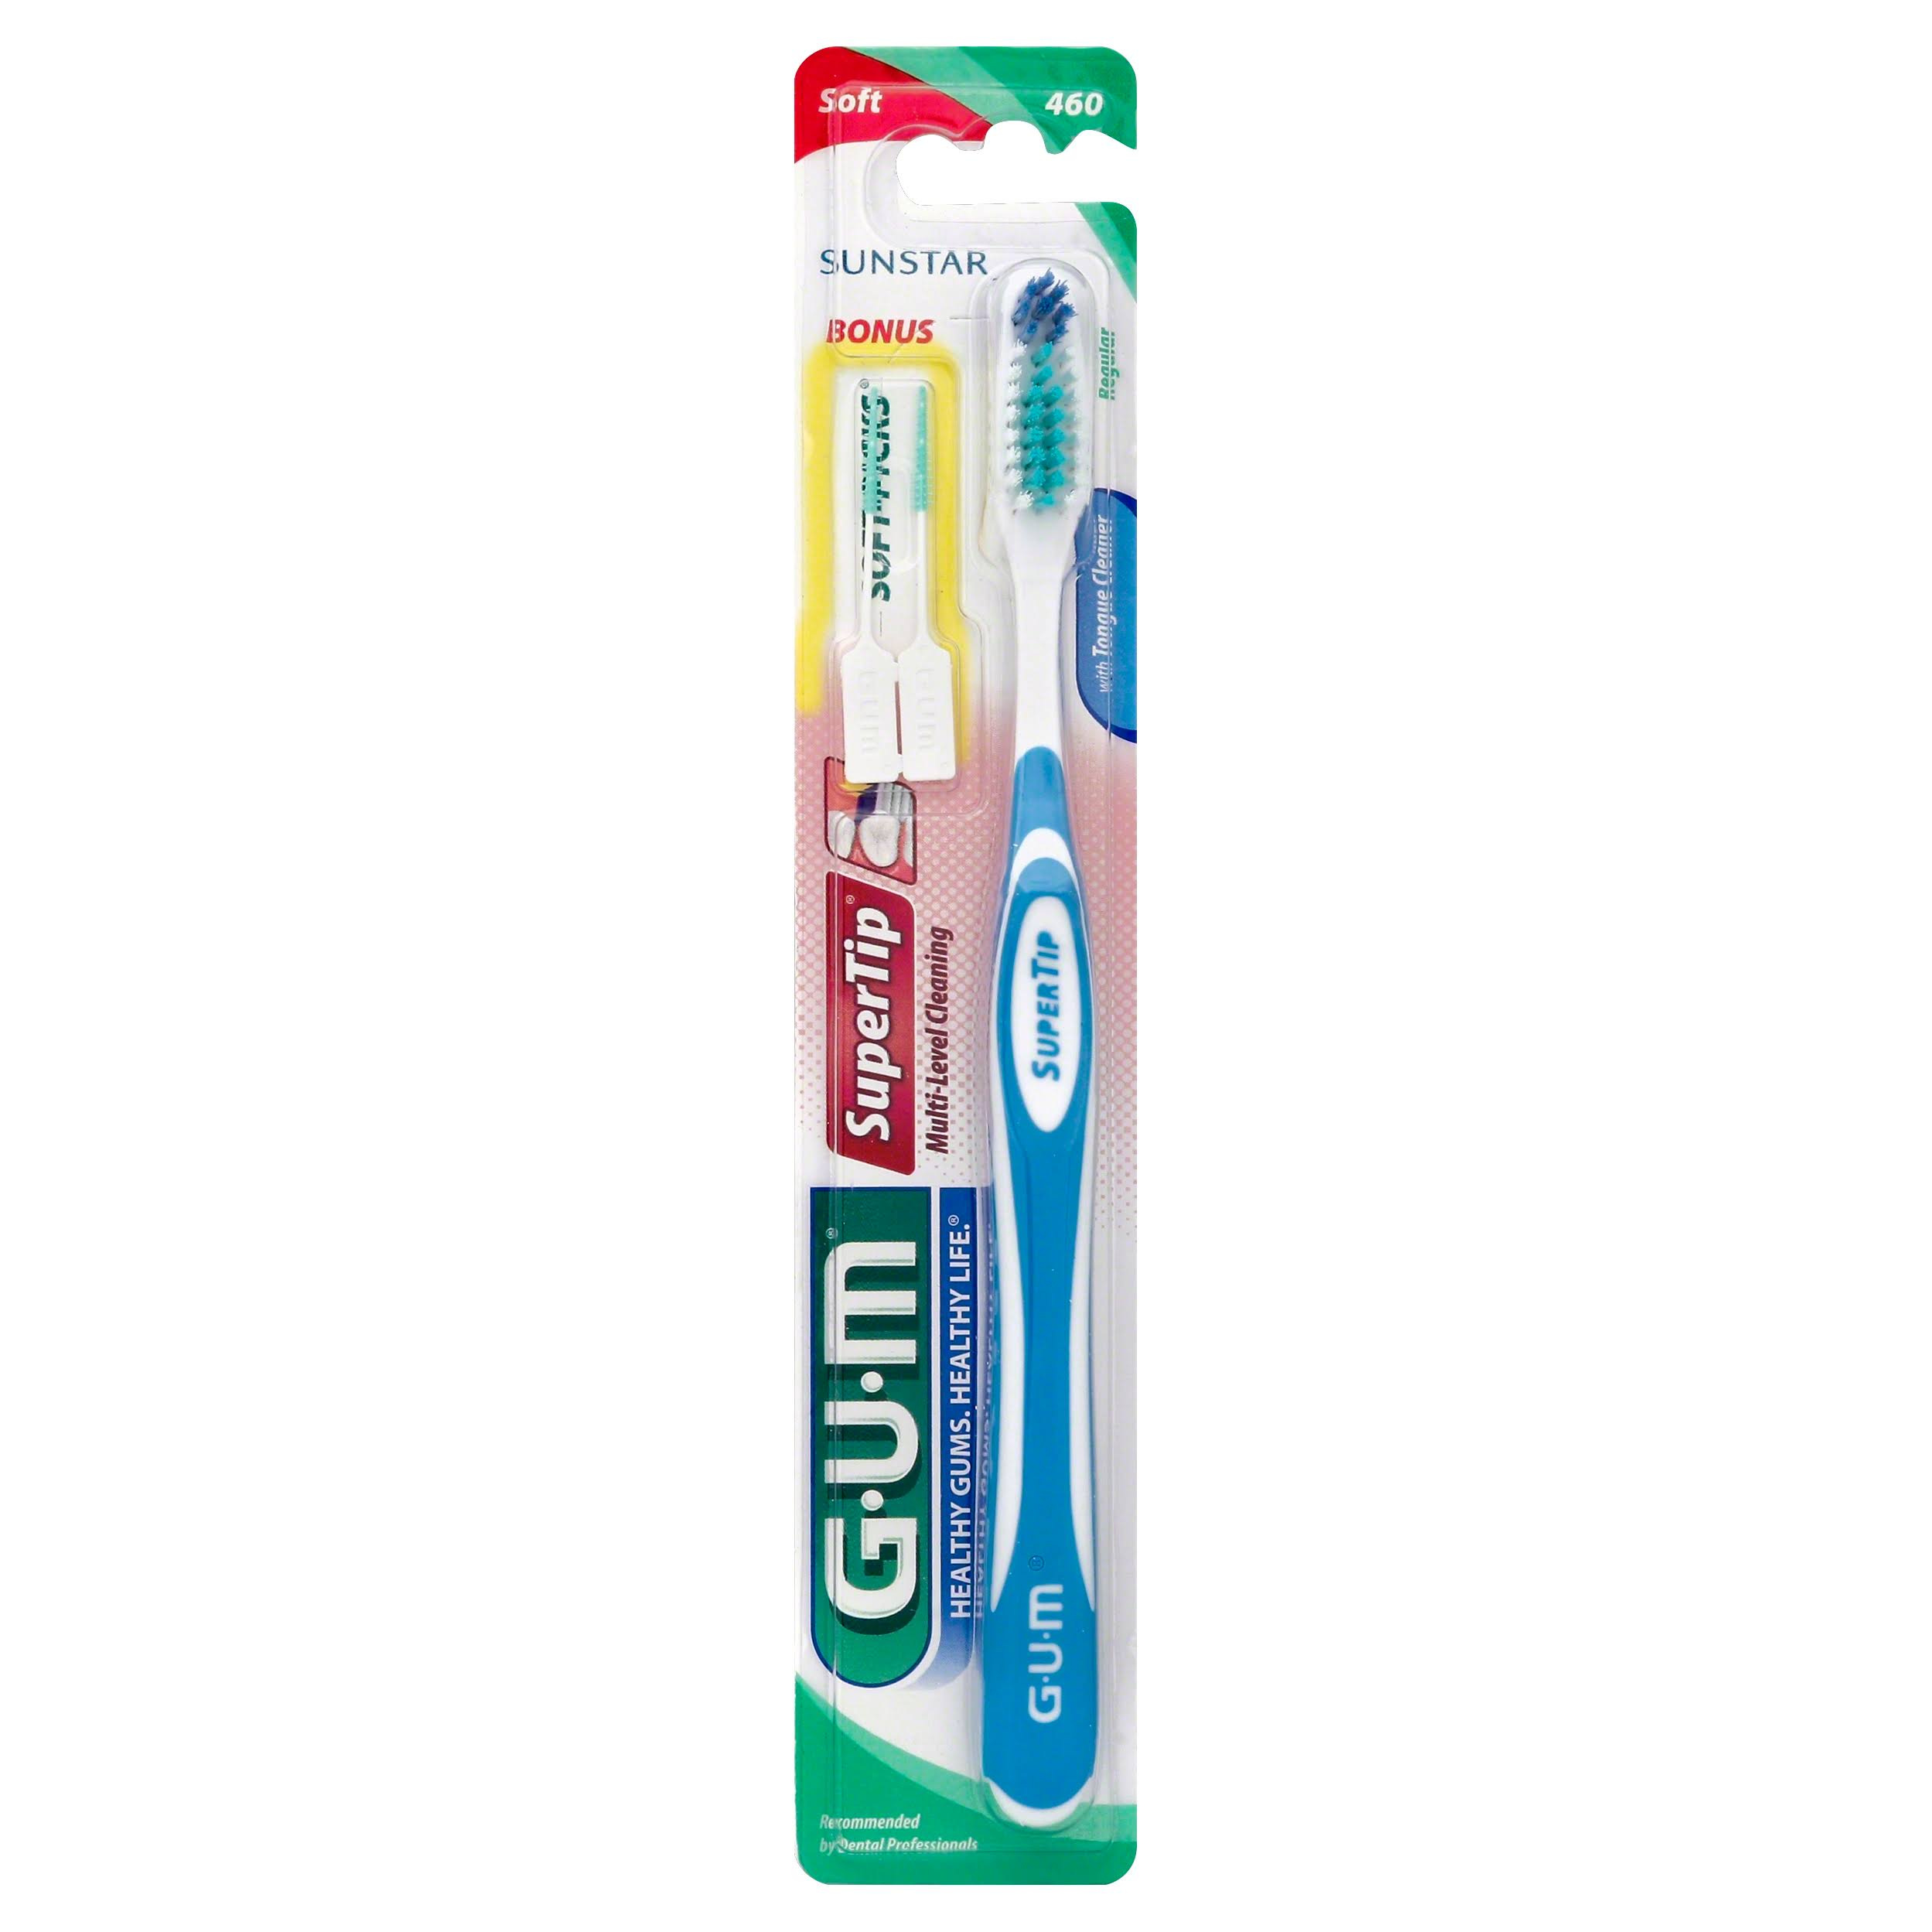 Gum Super Tip Toothbrush - Soft, Full